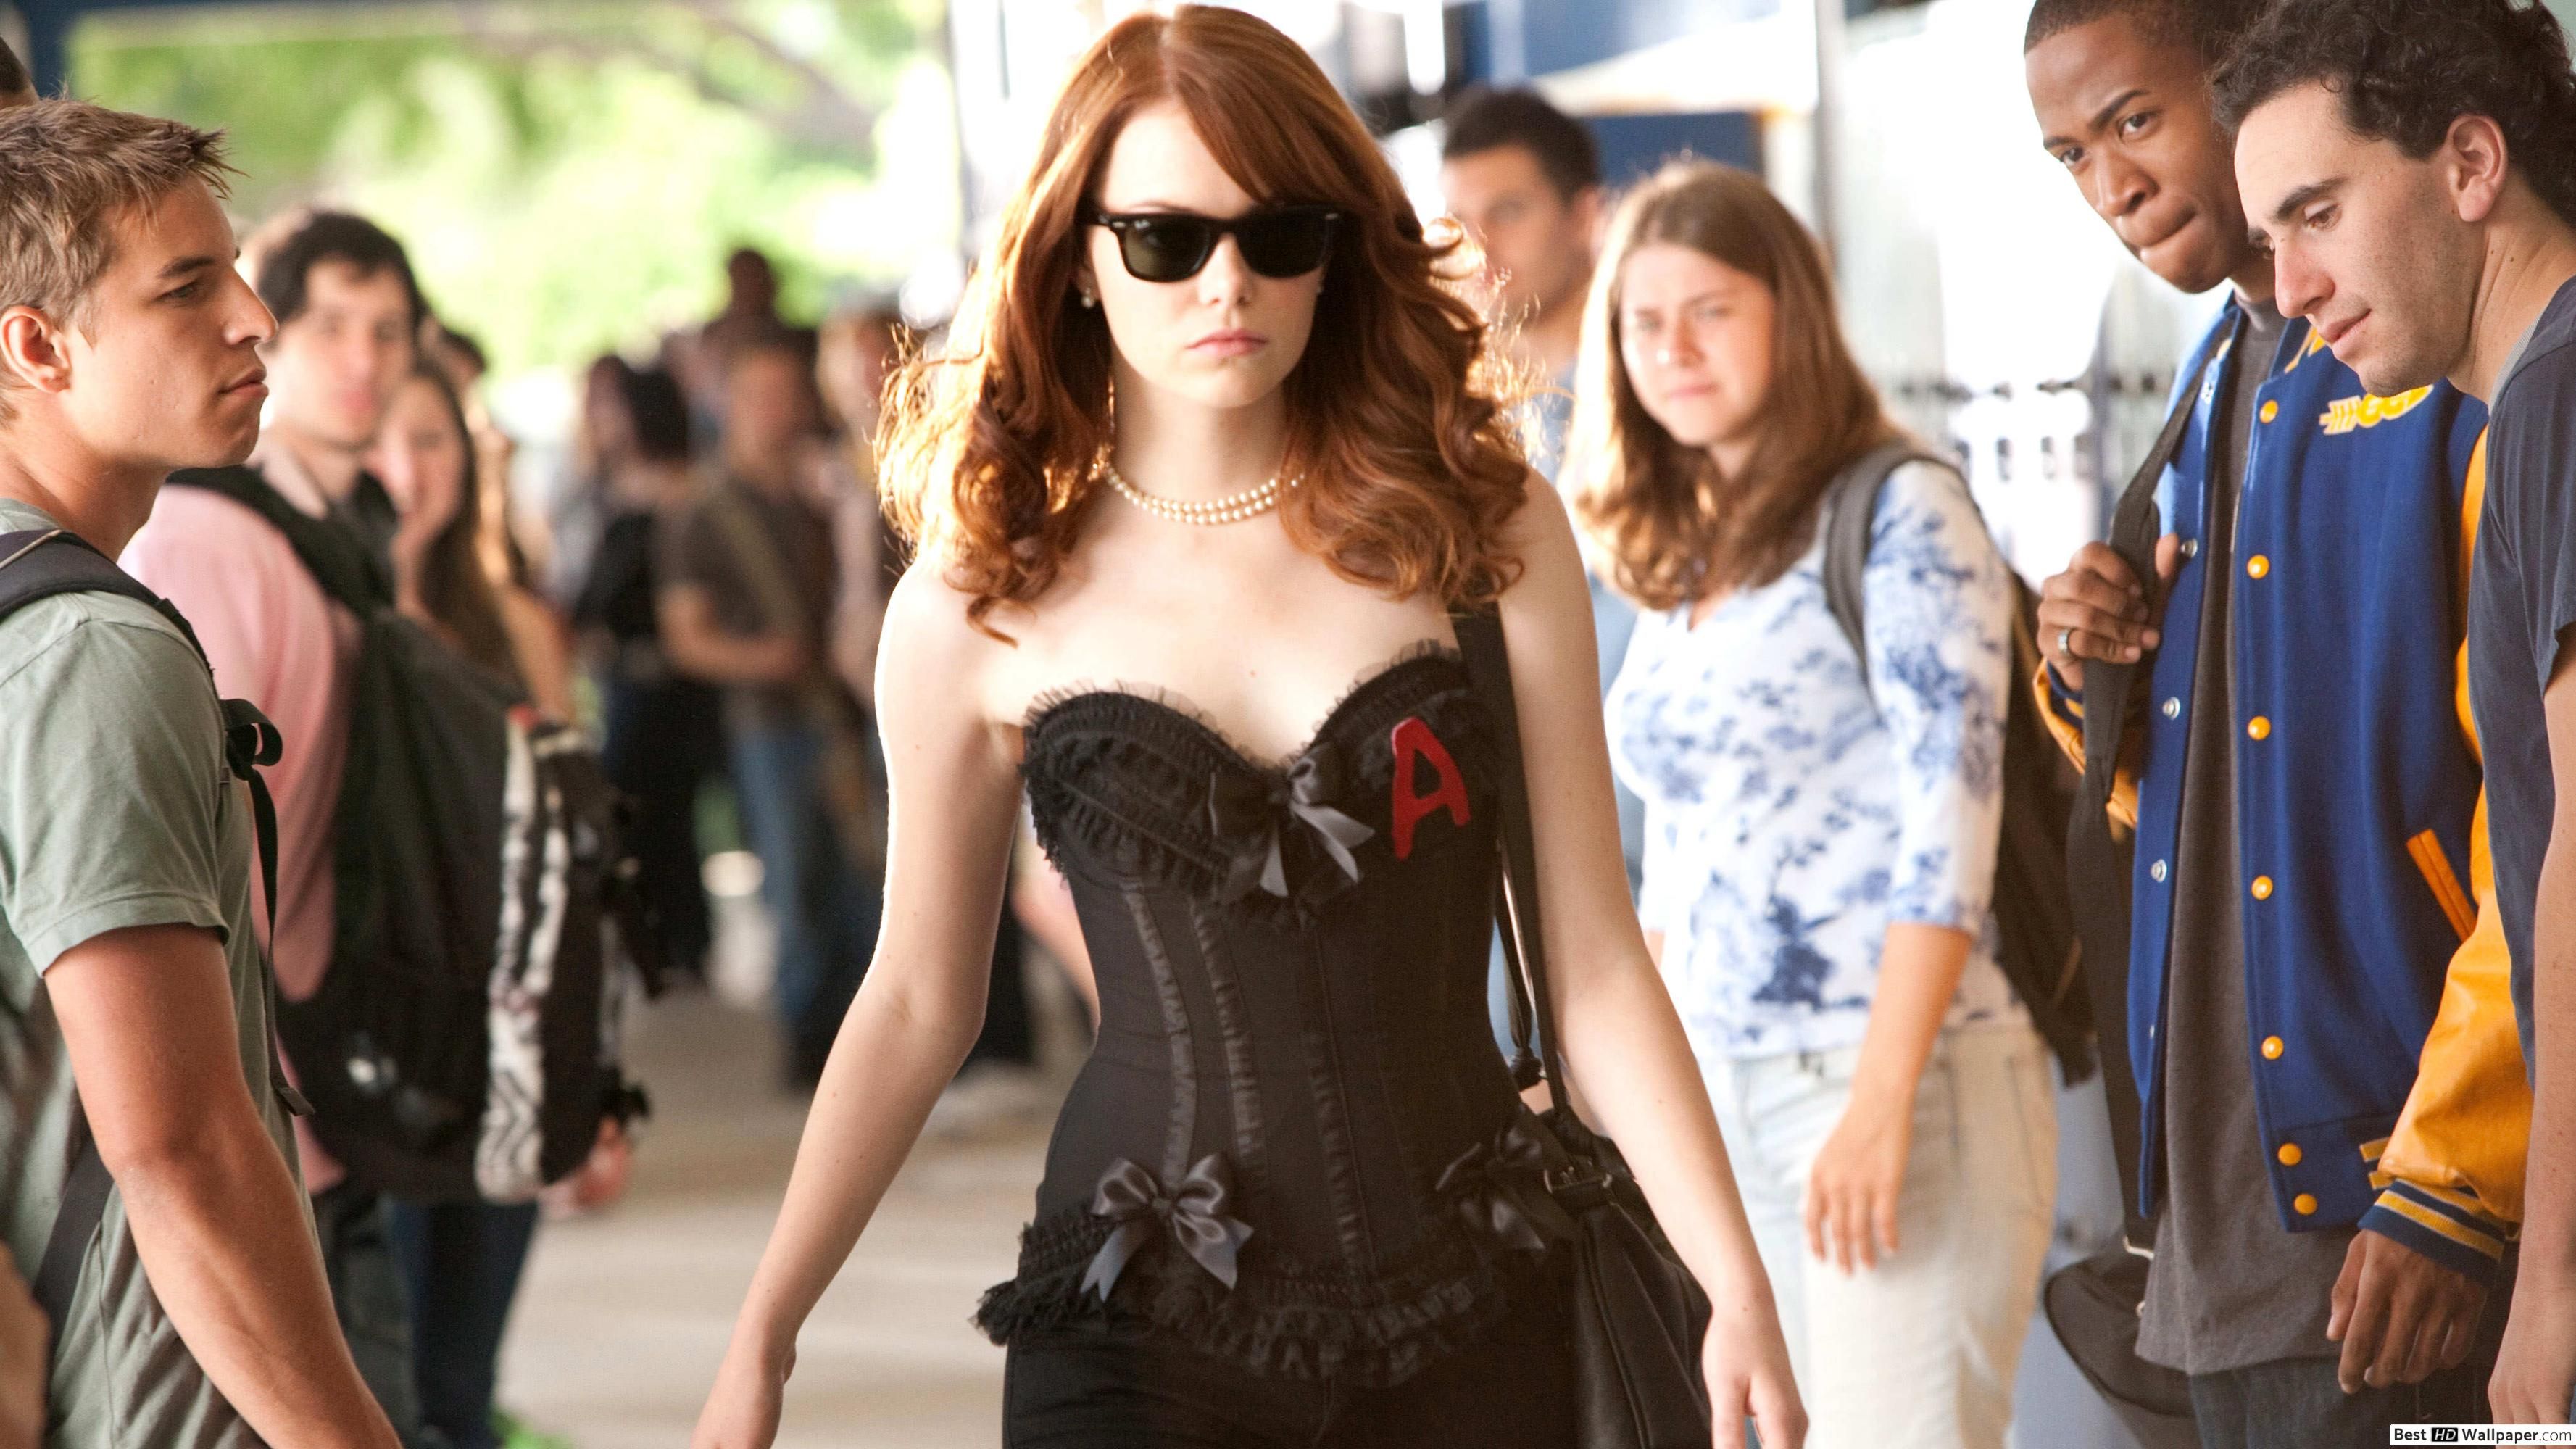 Olive walks down the outdoor hall of her school. She is wearing a corset top with the letter A on her right chest. Everyone stares at her as she walks by, and she smirks toward them all.